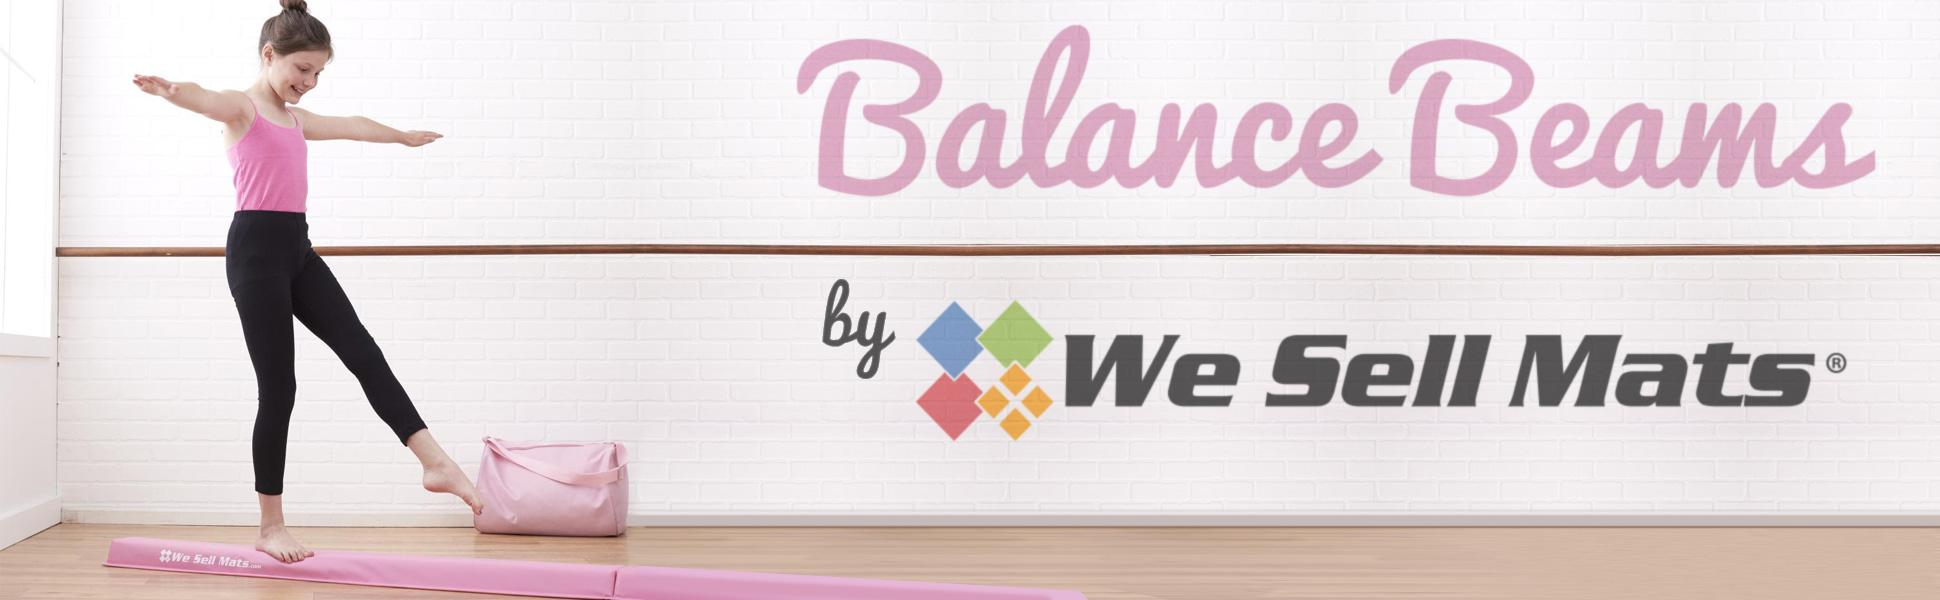 from the balance beam